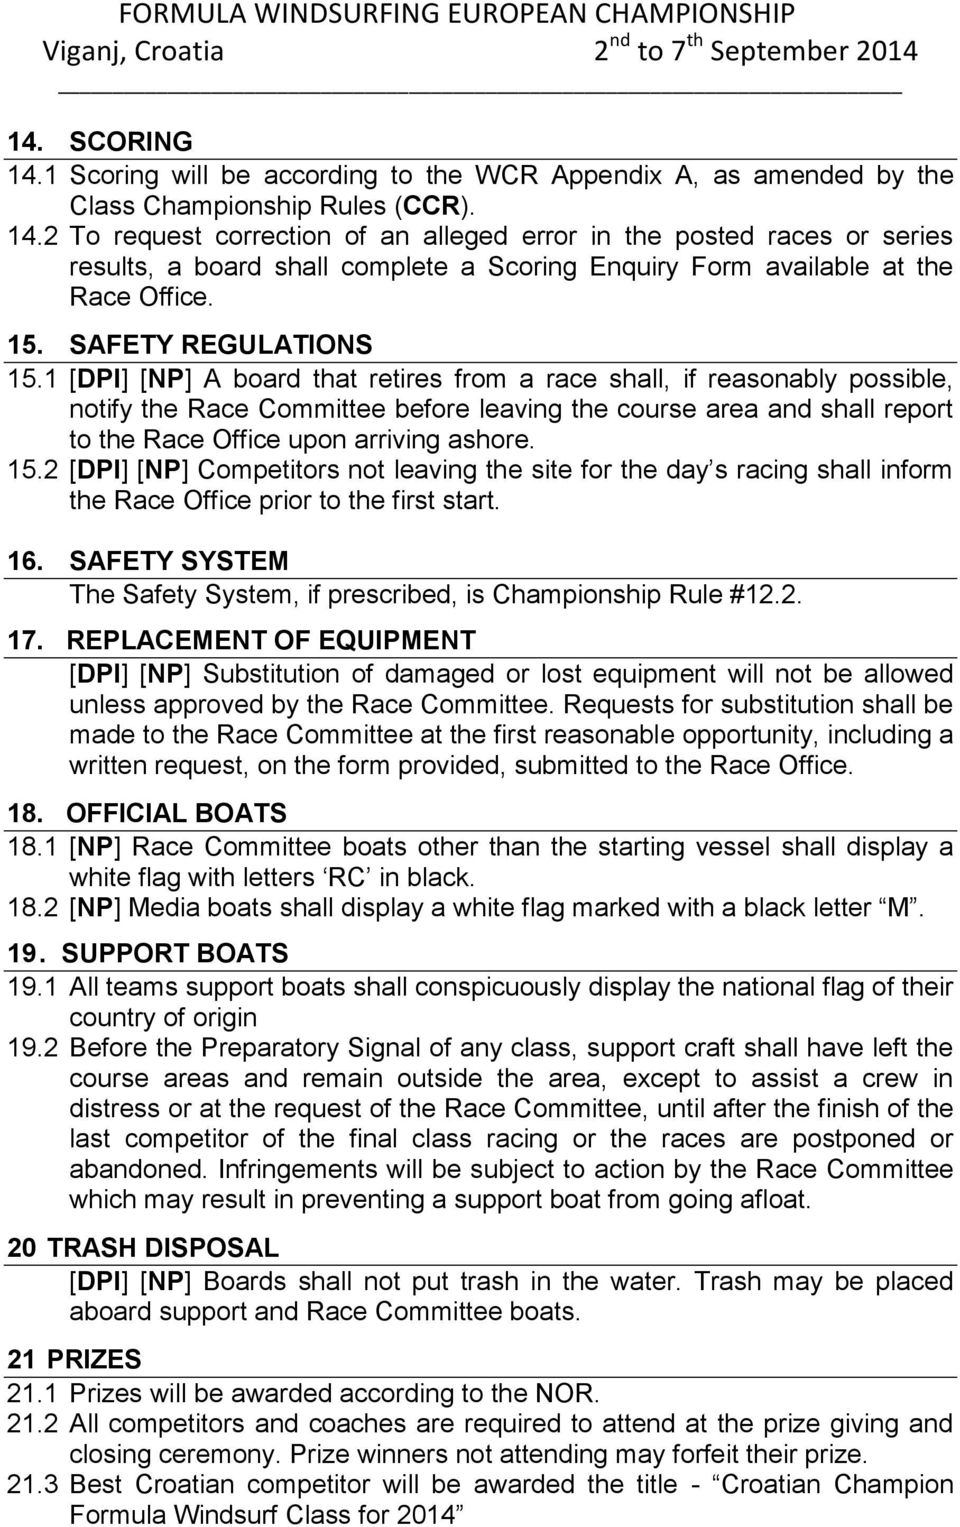 1 [DPI] [NP] A board that retires from a race shall, if reasonably possible, notify the Race Committee before leaving the course area and shall report to the Race Office upon arriving ashore. 15.